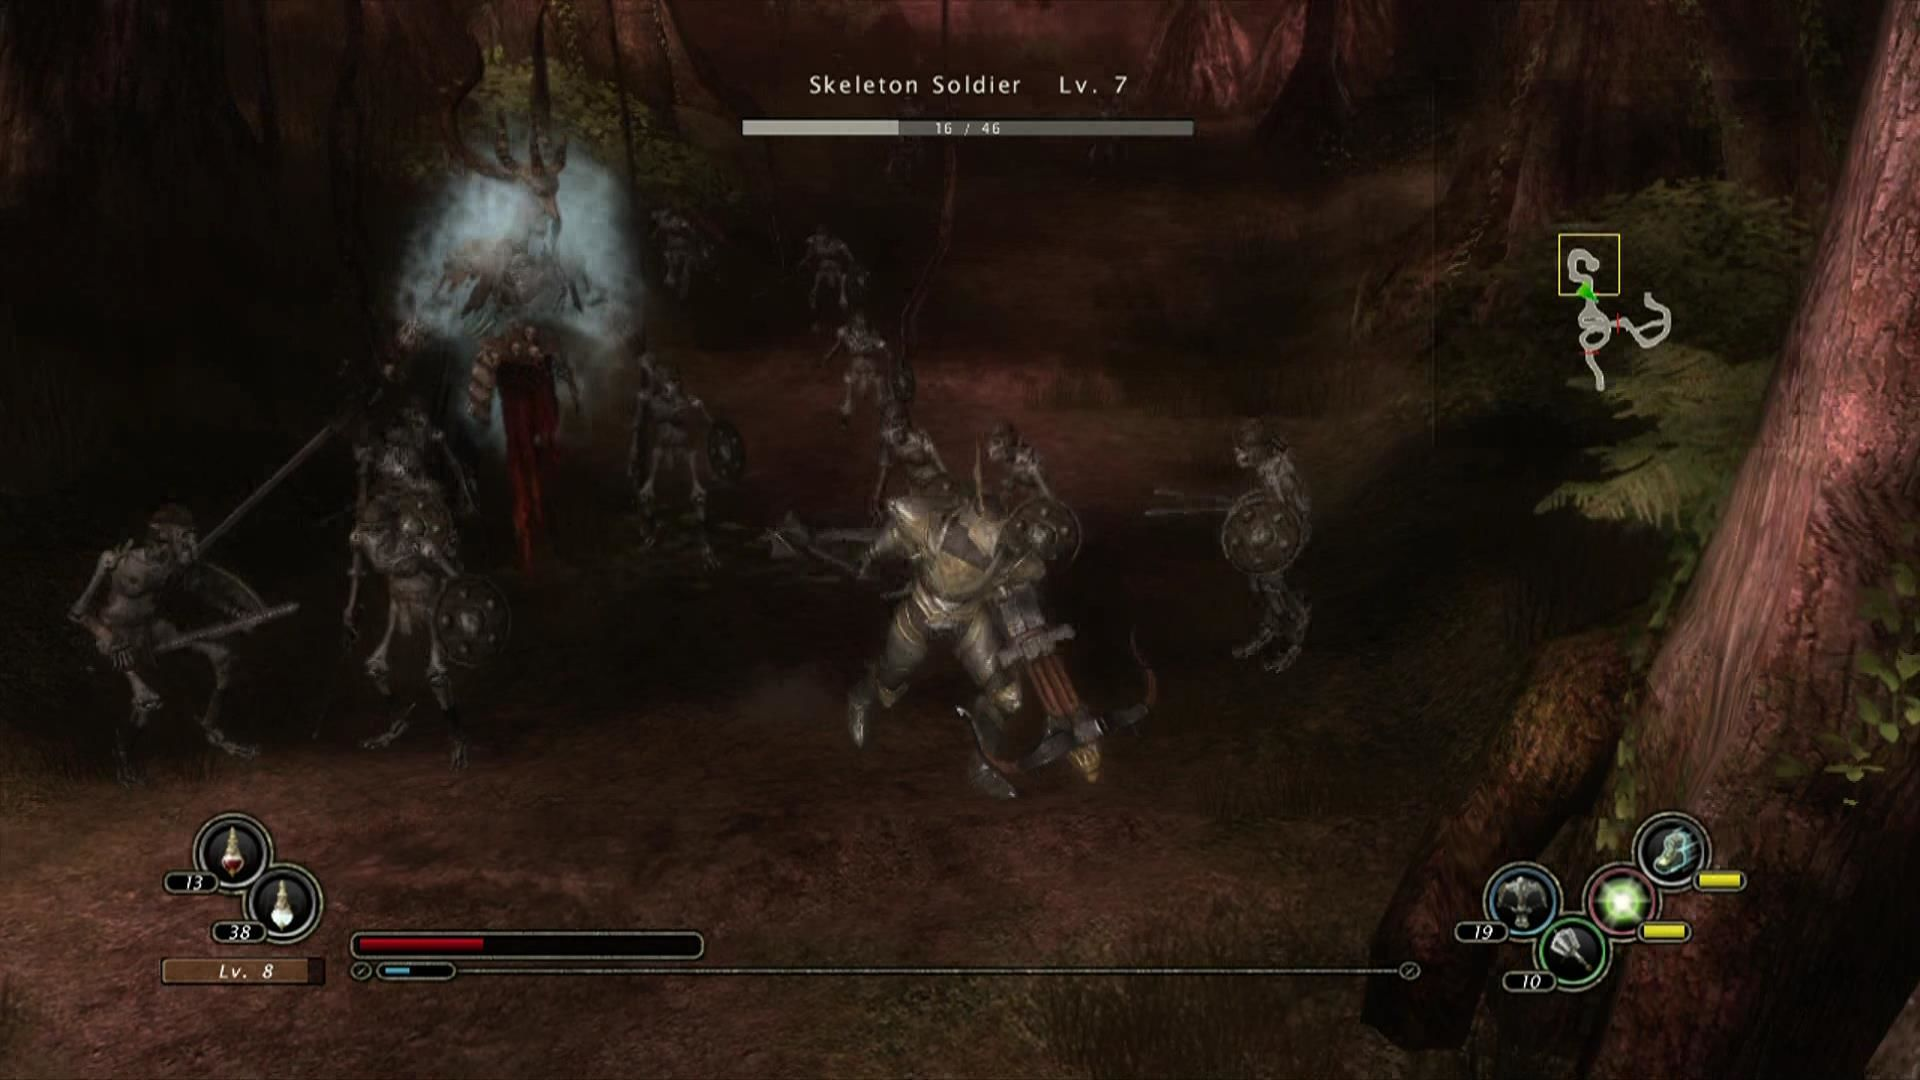 Kingdom Under Fire: Circle of Doom Xbox 360 Every fantasy RPG needs skeleton soldiers.